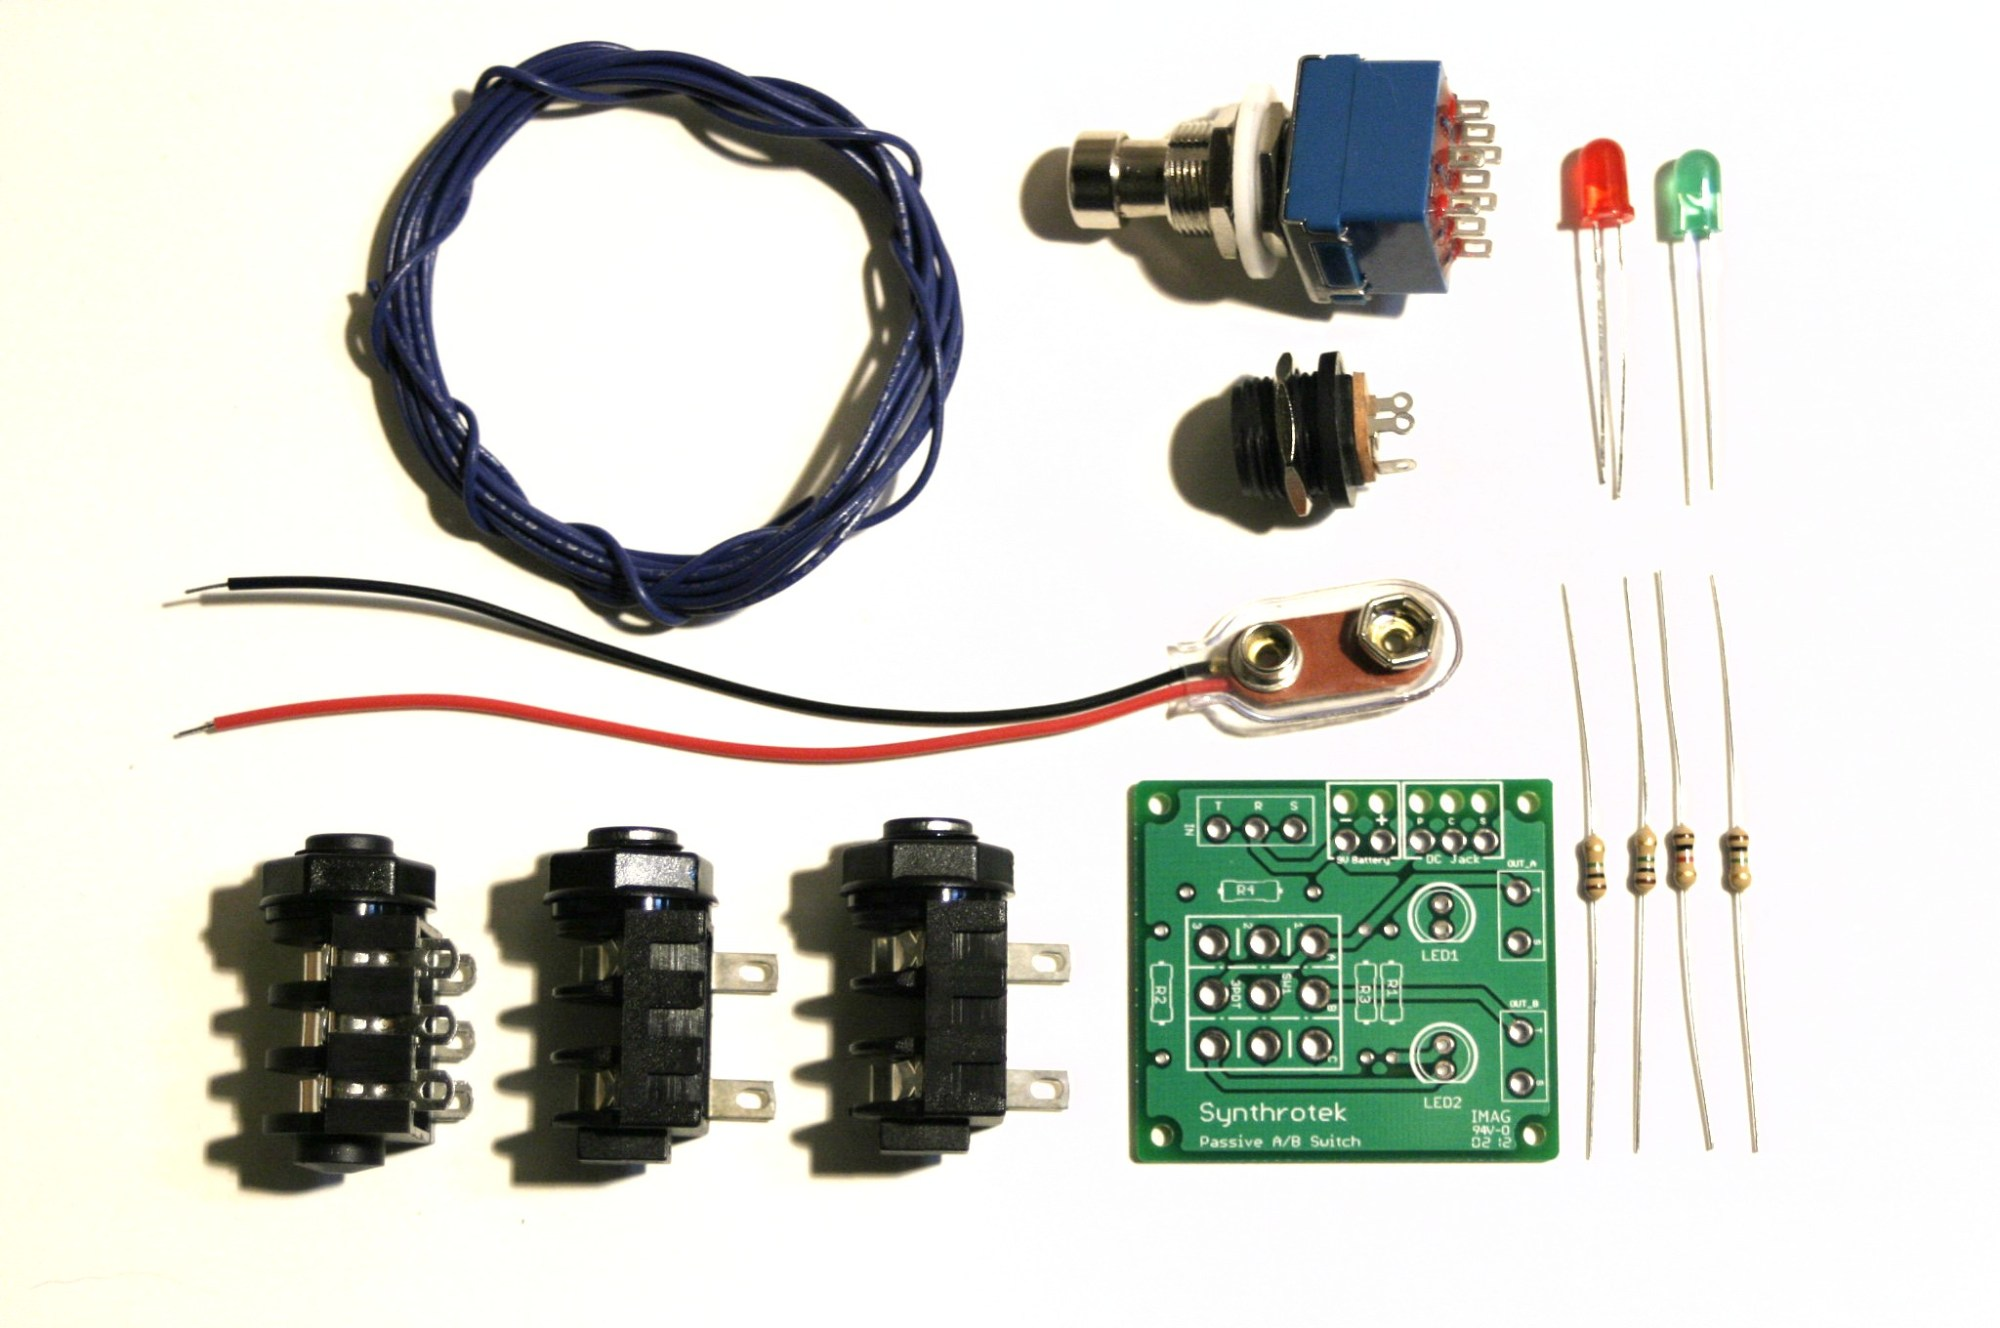 hight resolution of passive a b switch 3pdt electronic circuits a